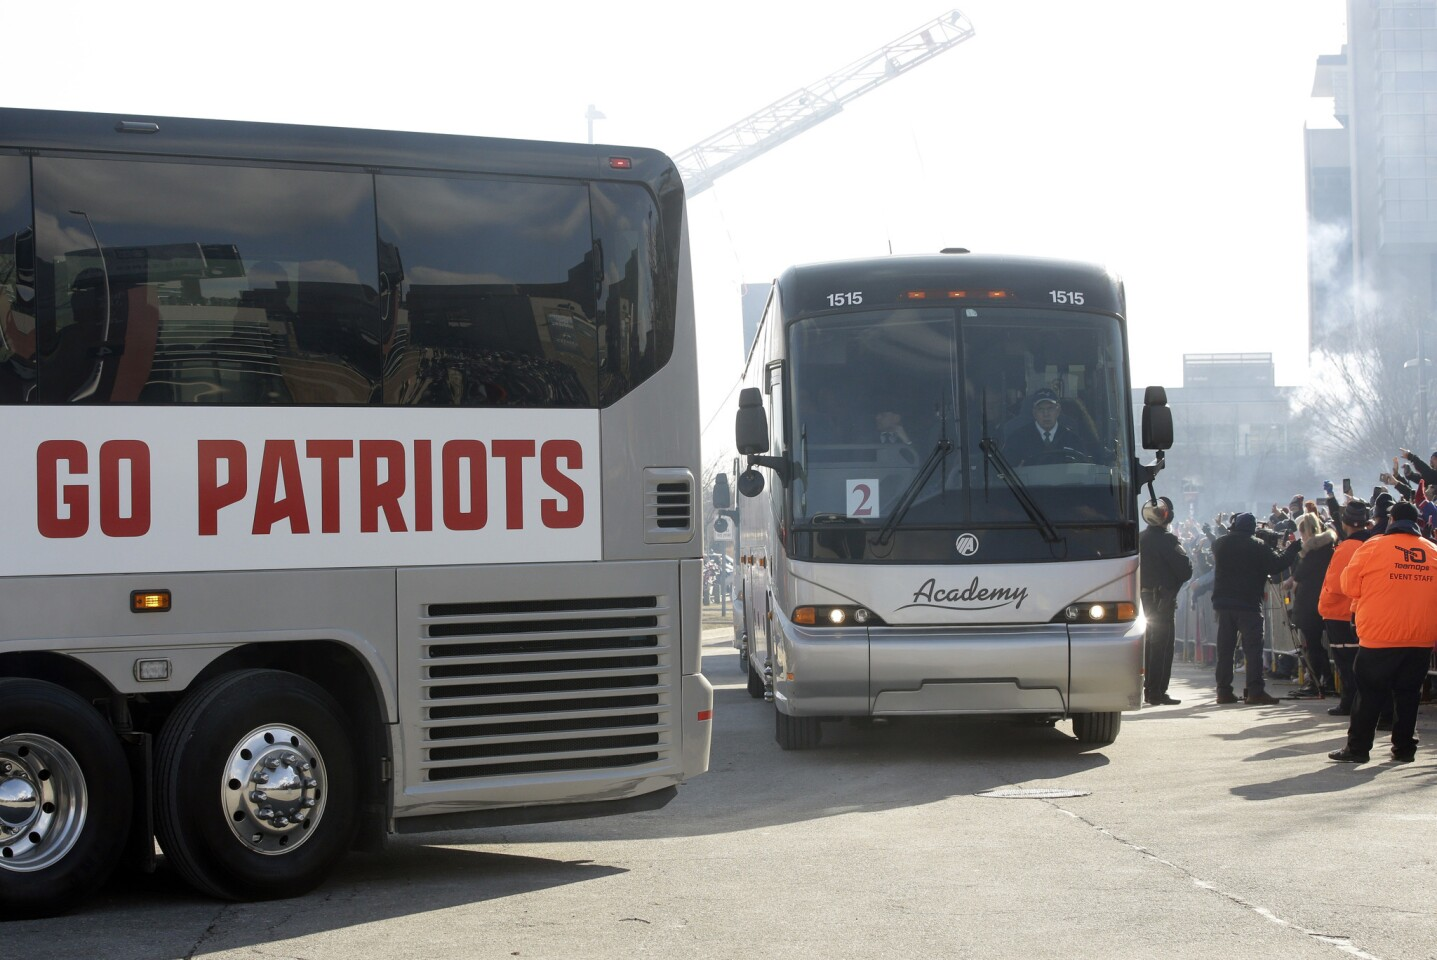 Buses carrying members of the New England Patriots football team depart Gillette Stadium, in Foxborough, Mass., on their way to Atlanta, Ga., following an NFL Super Bowl send-off rally for the team, Sunday, Jan. 27, 2019. The Los Angeles Rams are to play the New England Patriots in Super Bowl 53 on Feb. 3, in Atlanta.